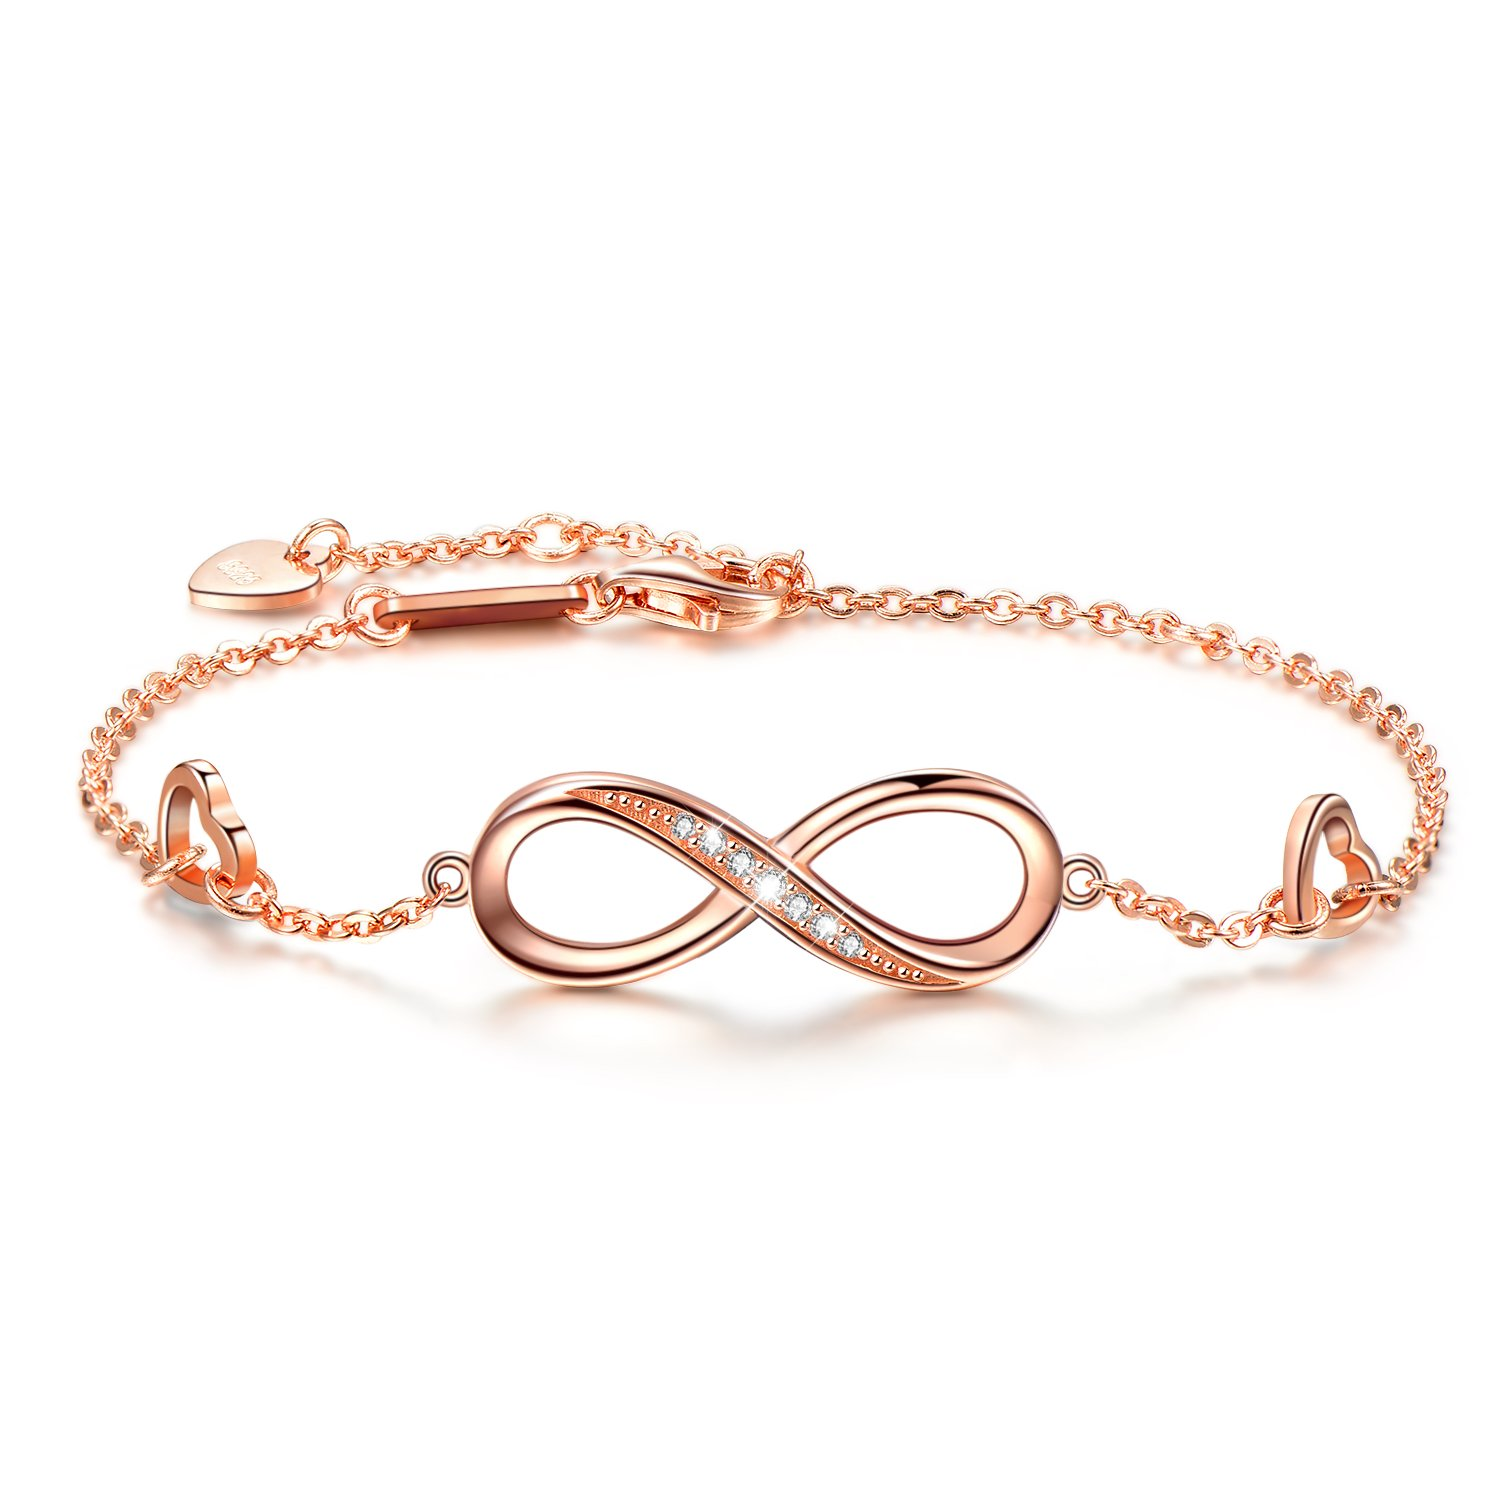 OneSight Women Infinity Love Bracelet, Rose Gold Plated 925 Sterling Silver Adjustable Charm Forever Bracelet for Women Girls